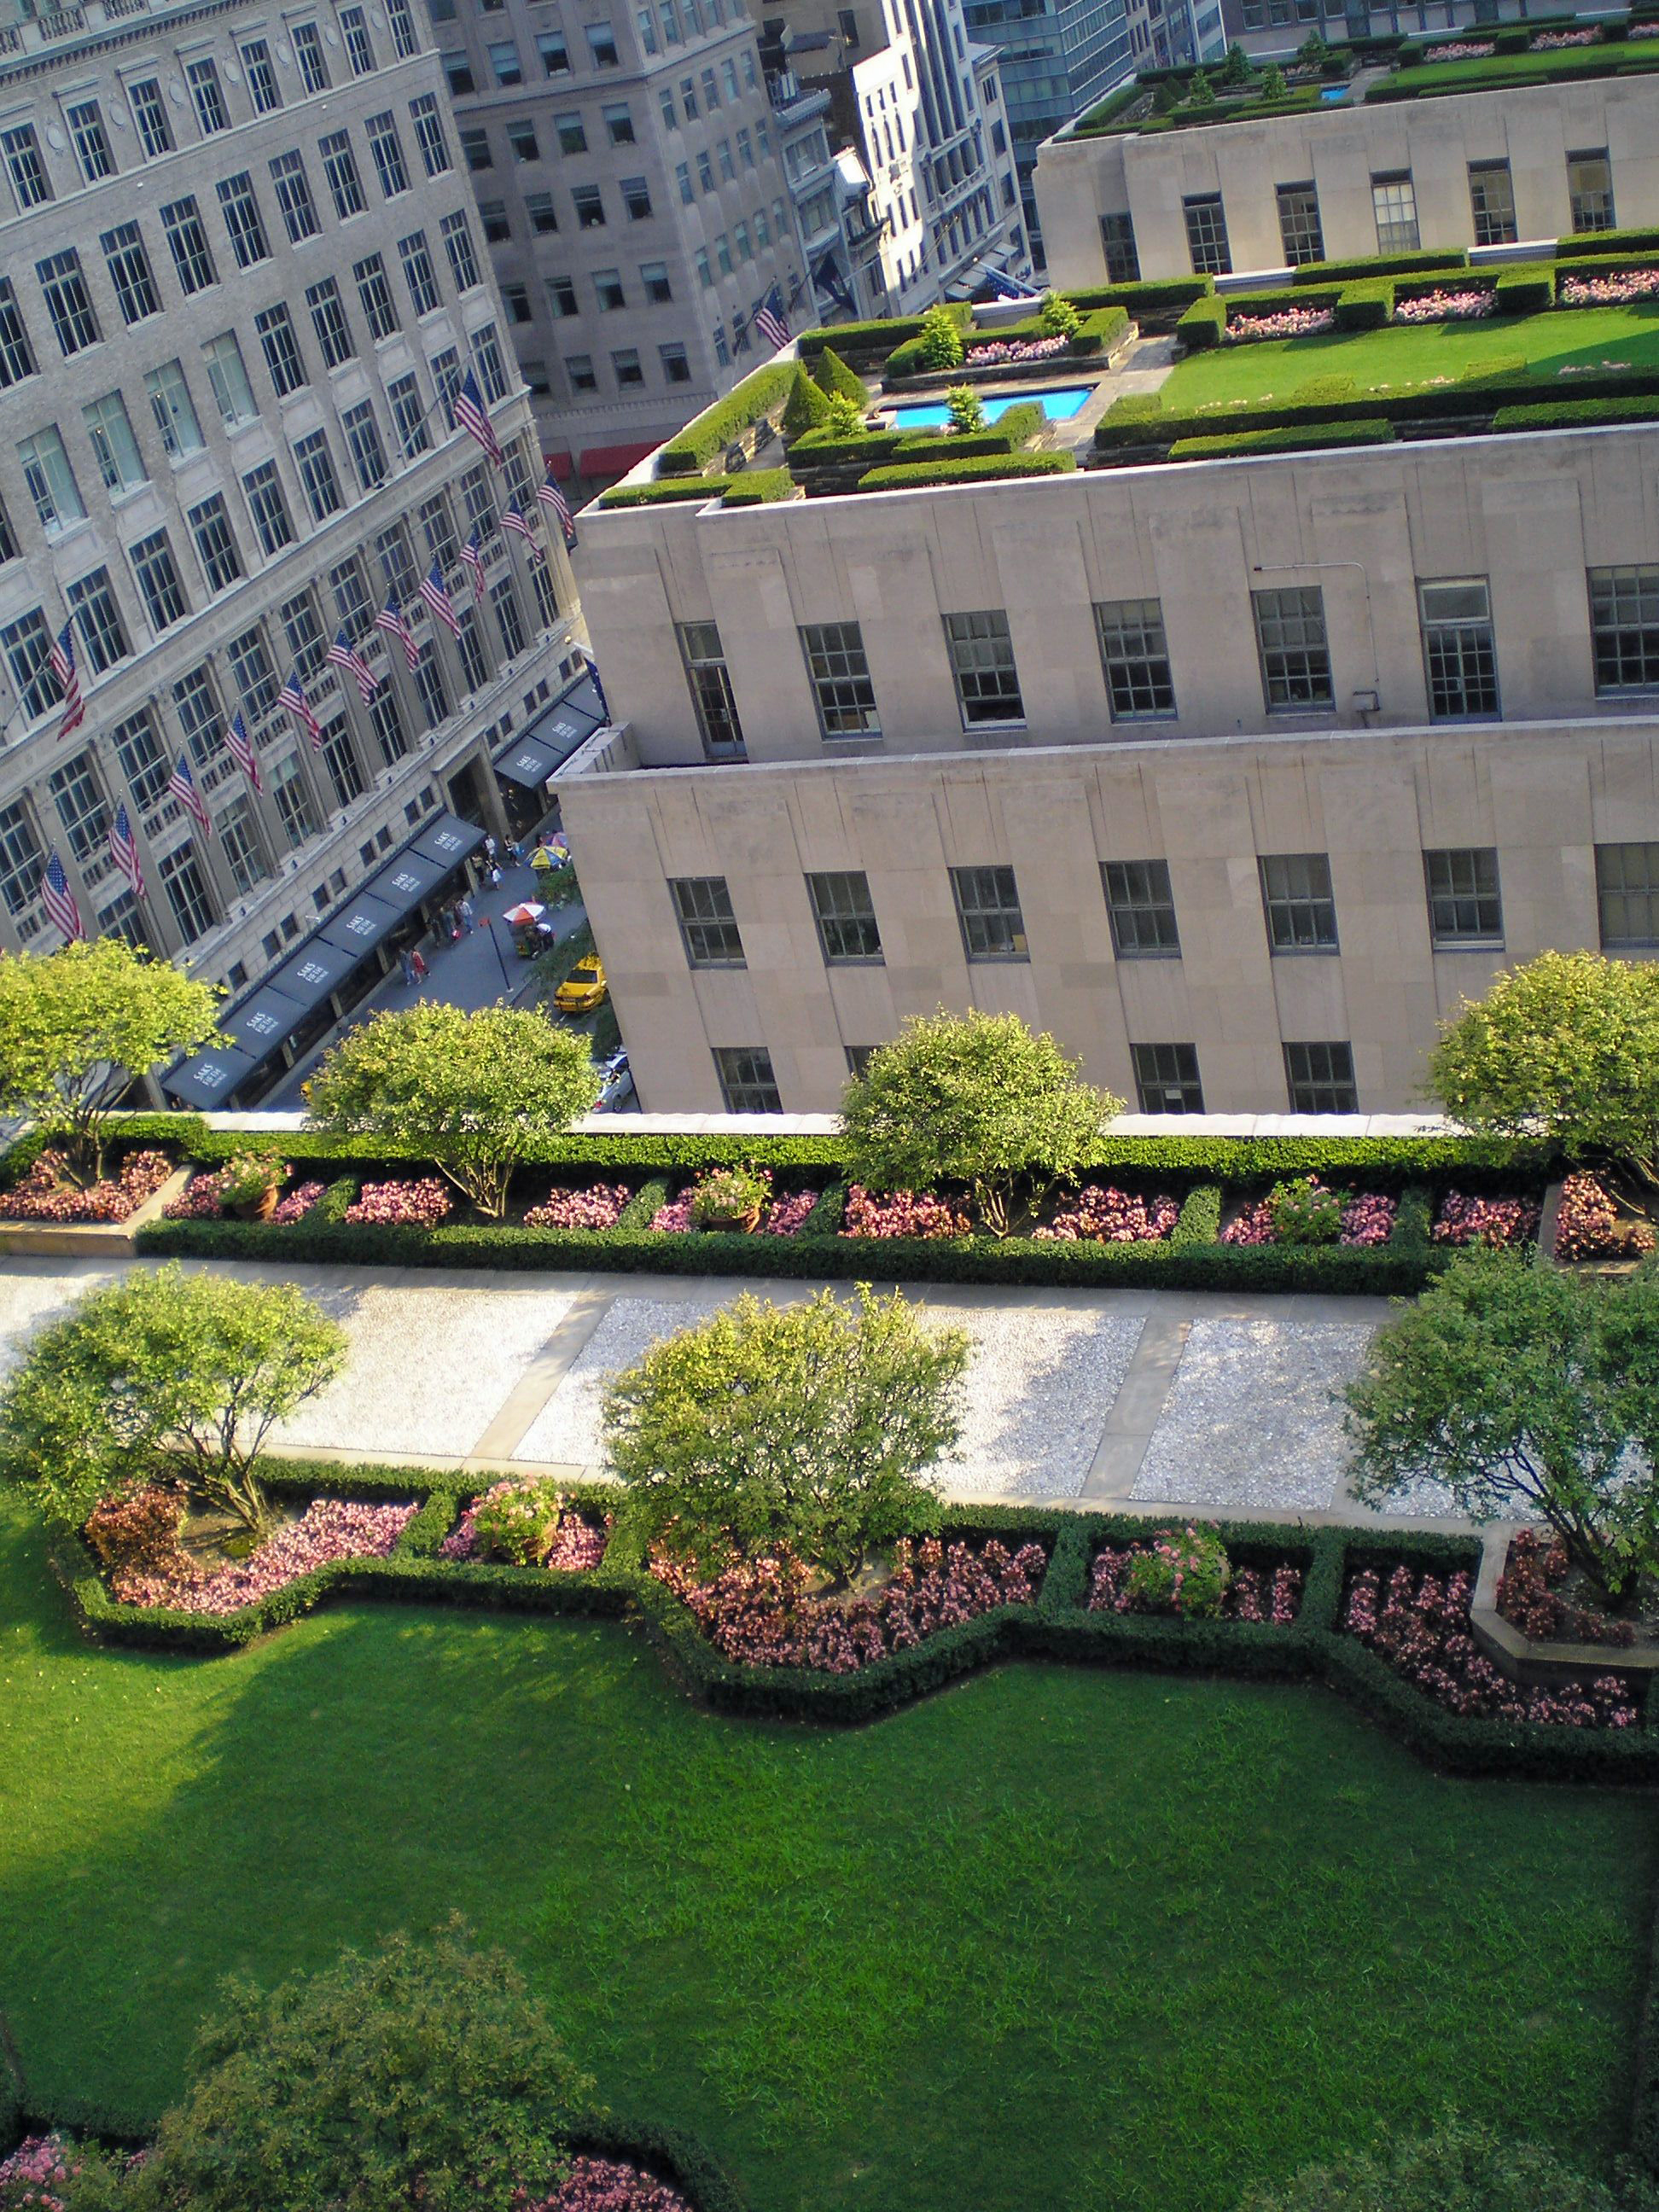 File:Rockefeller Center Rooftop Gardens 2 By David Shankbone.JPG